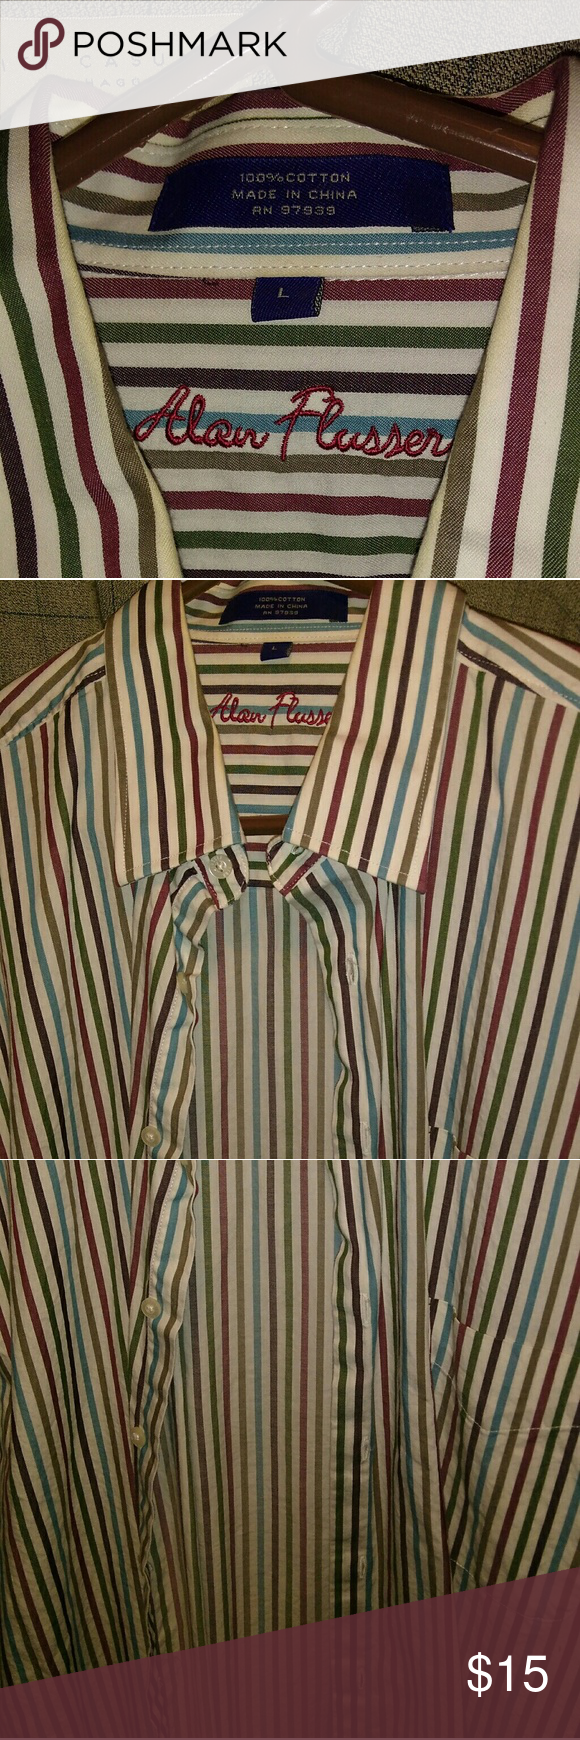 Button up casual shirt! This is a great casual dress shirt